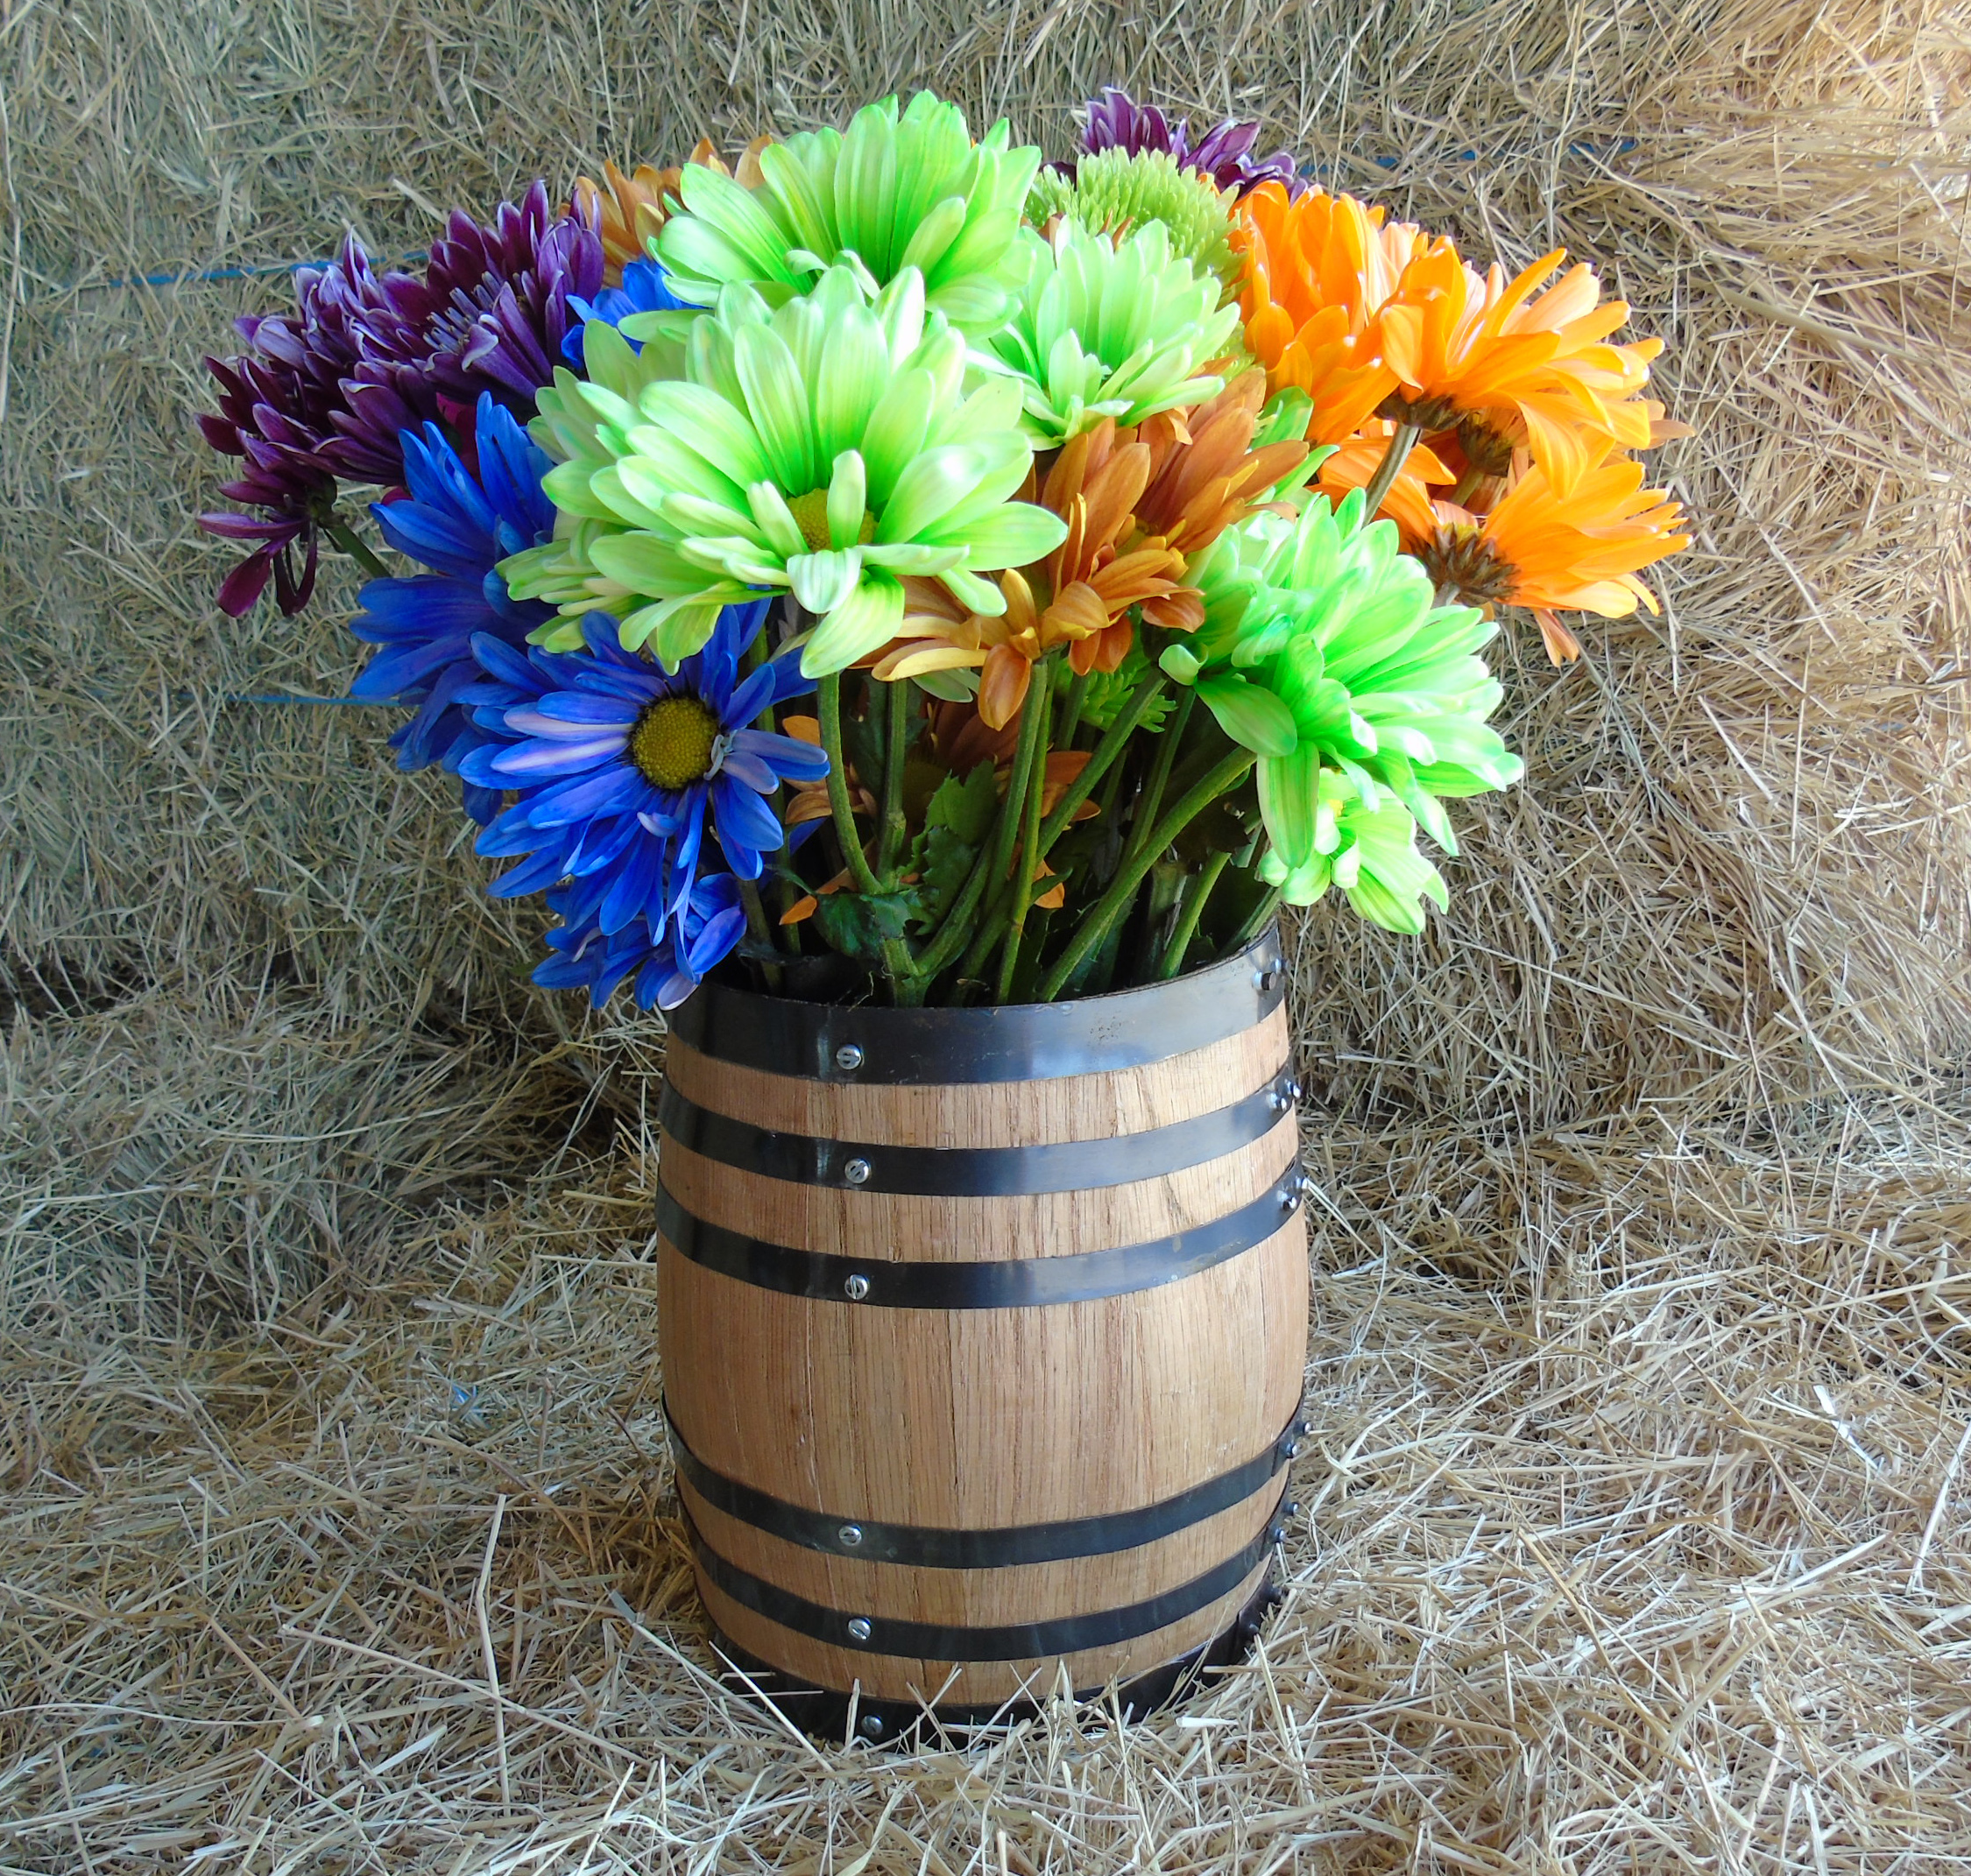 Oak barrel centerpiece flower vase mini barrels